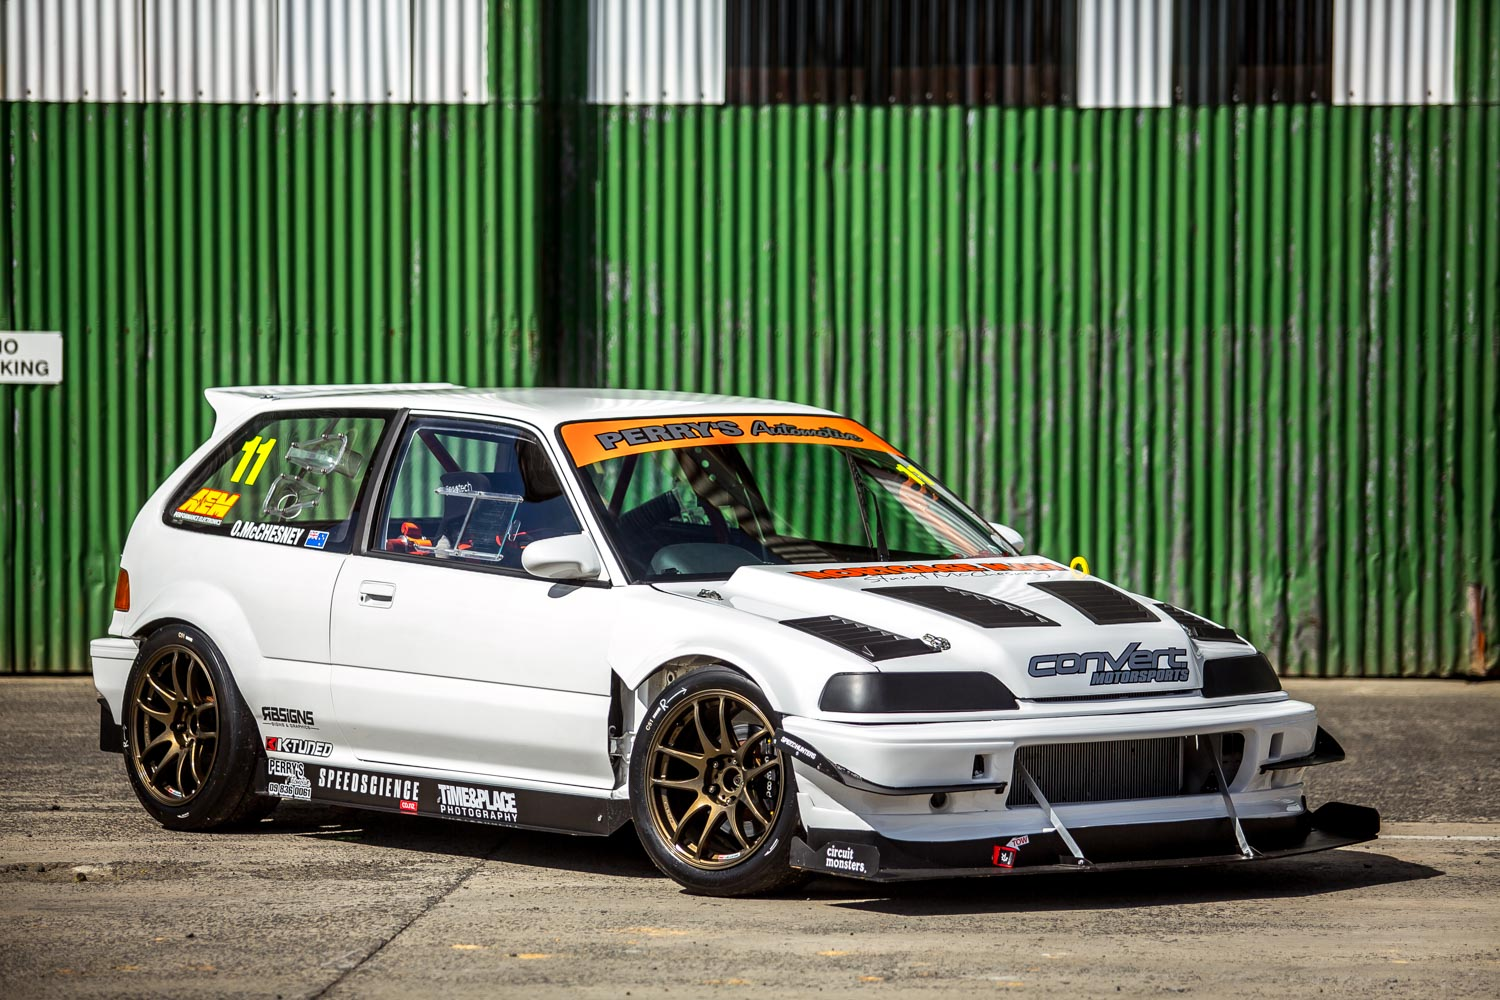 K swapped: EF3 K-powered Civic — The Motorhood